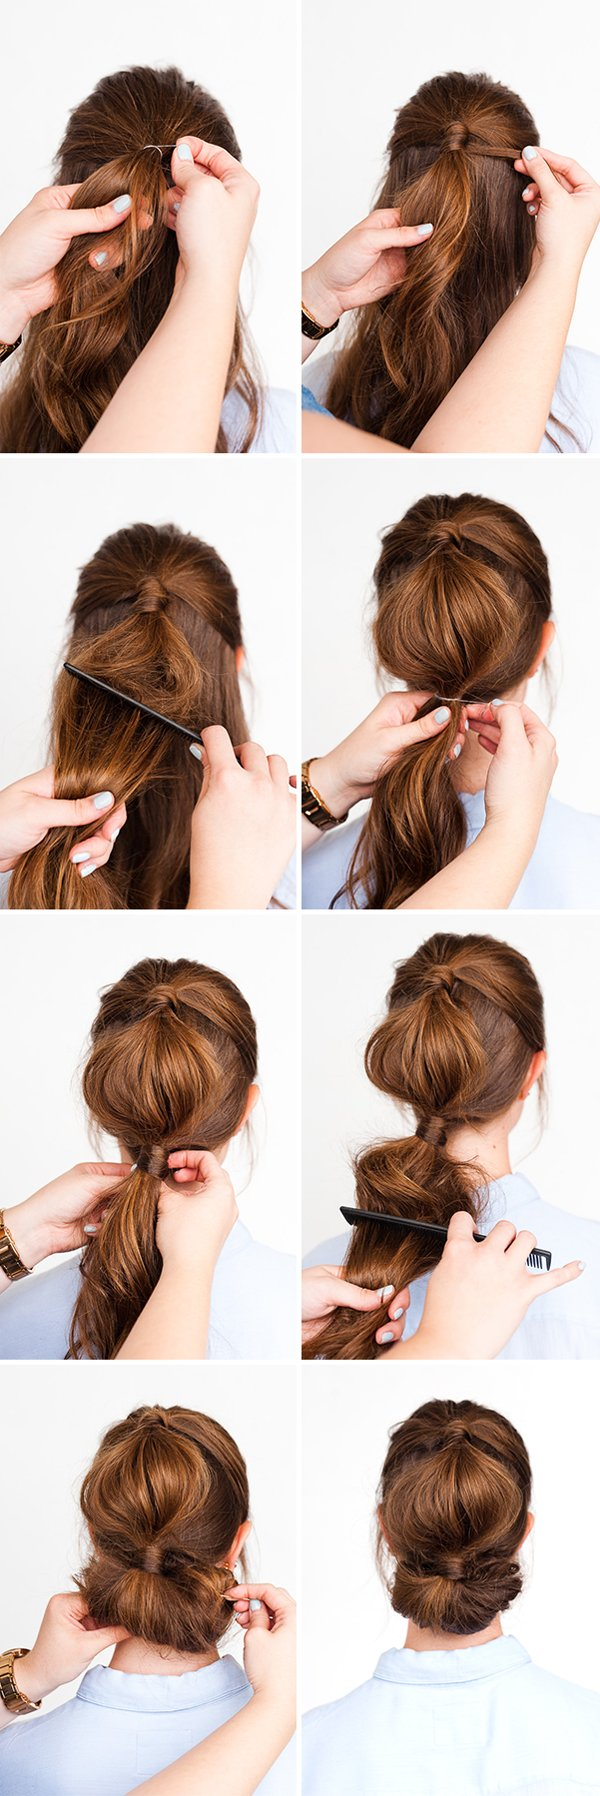 Simple Holiday Hair Two Ways in 10 Minutes #holidayhair #hairtutorial #holidaybeauty #updo